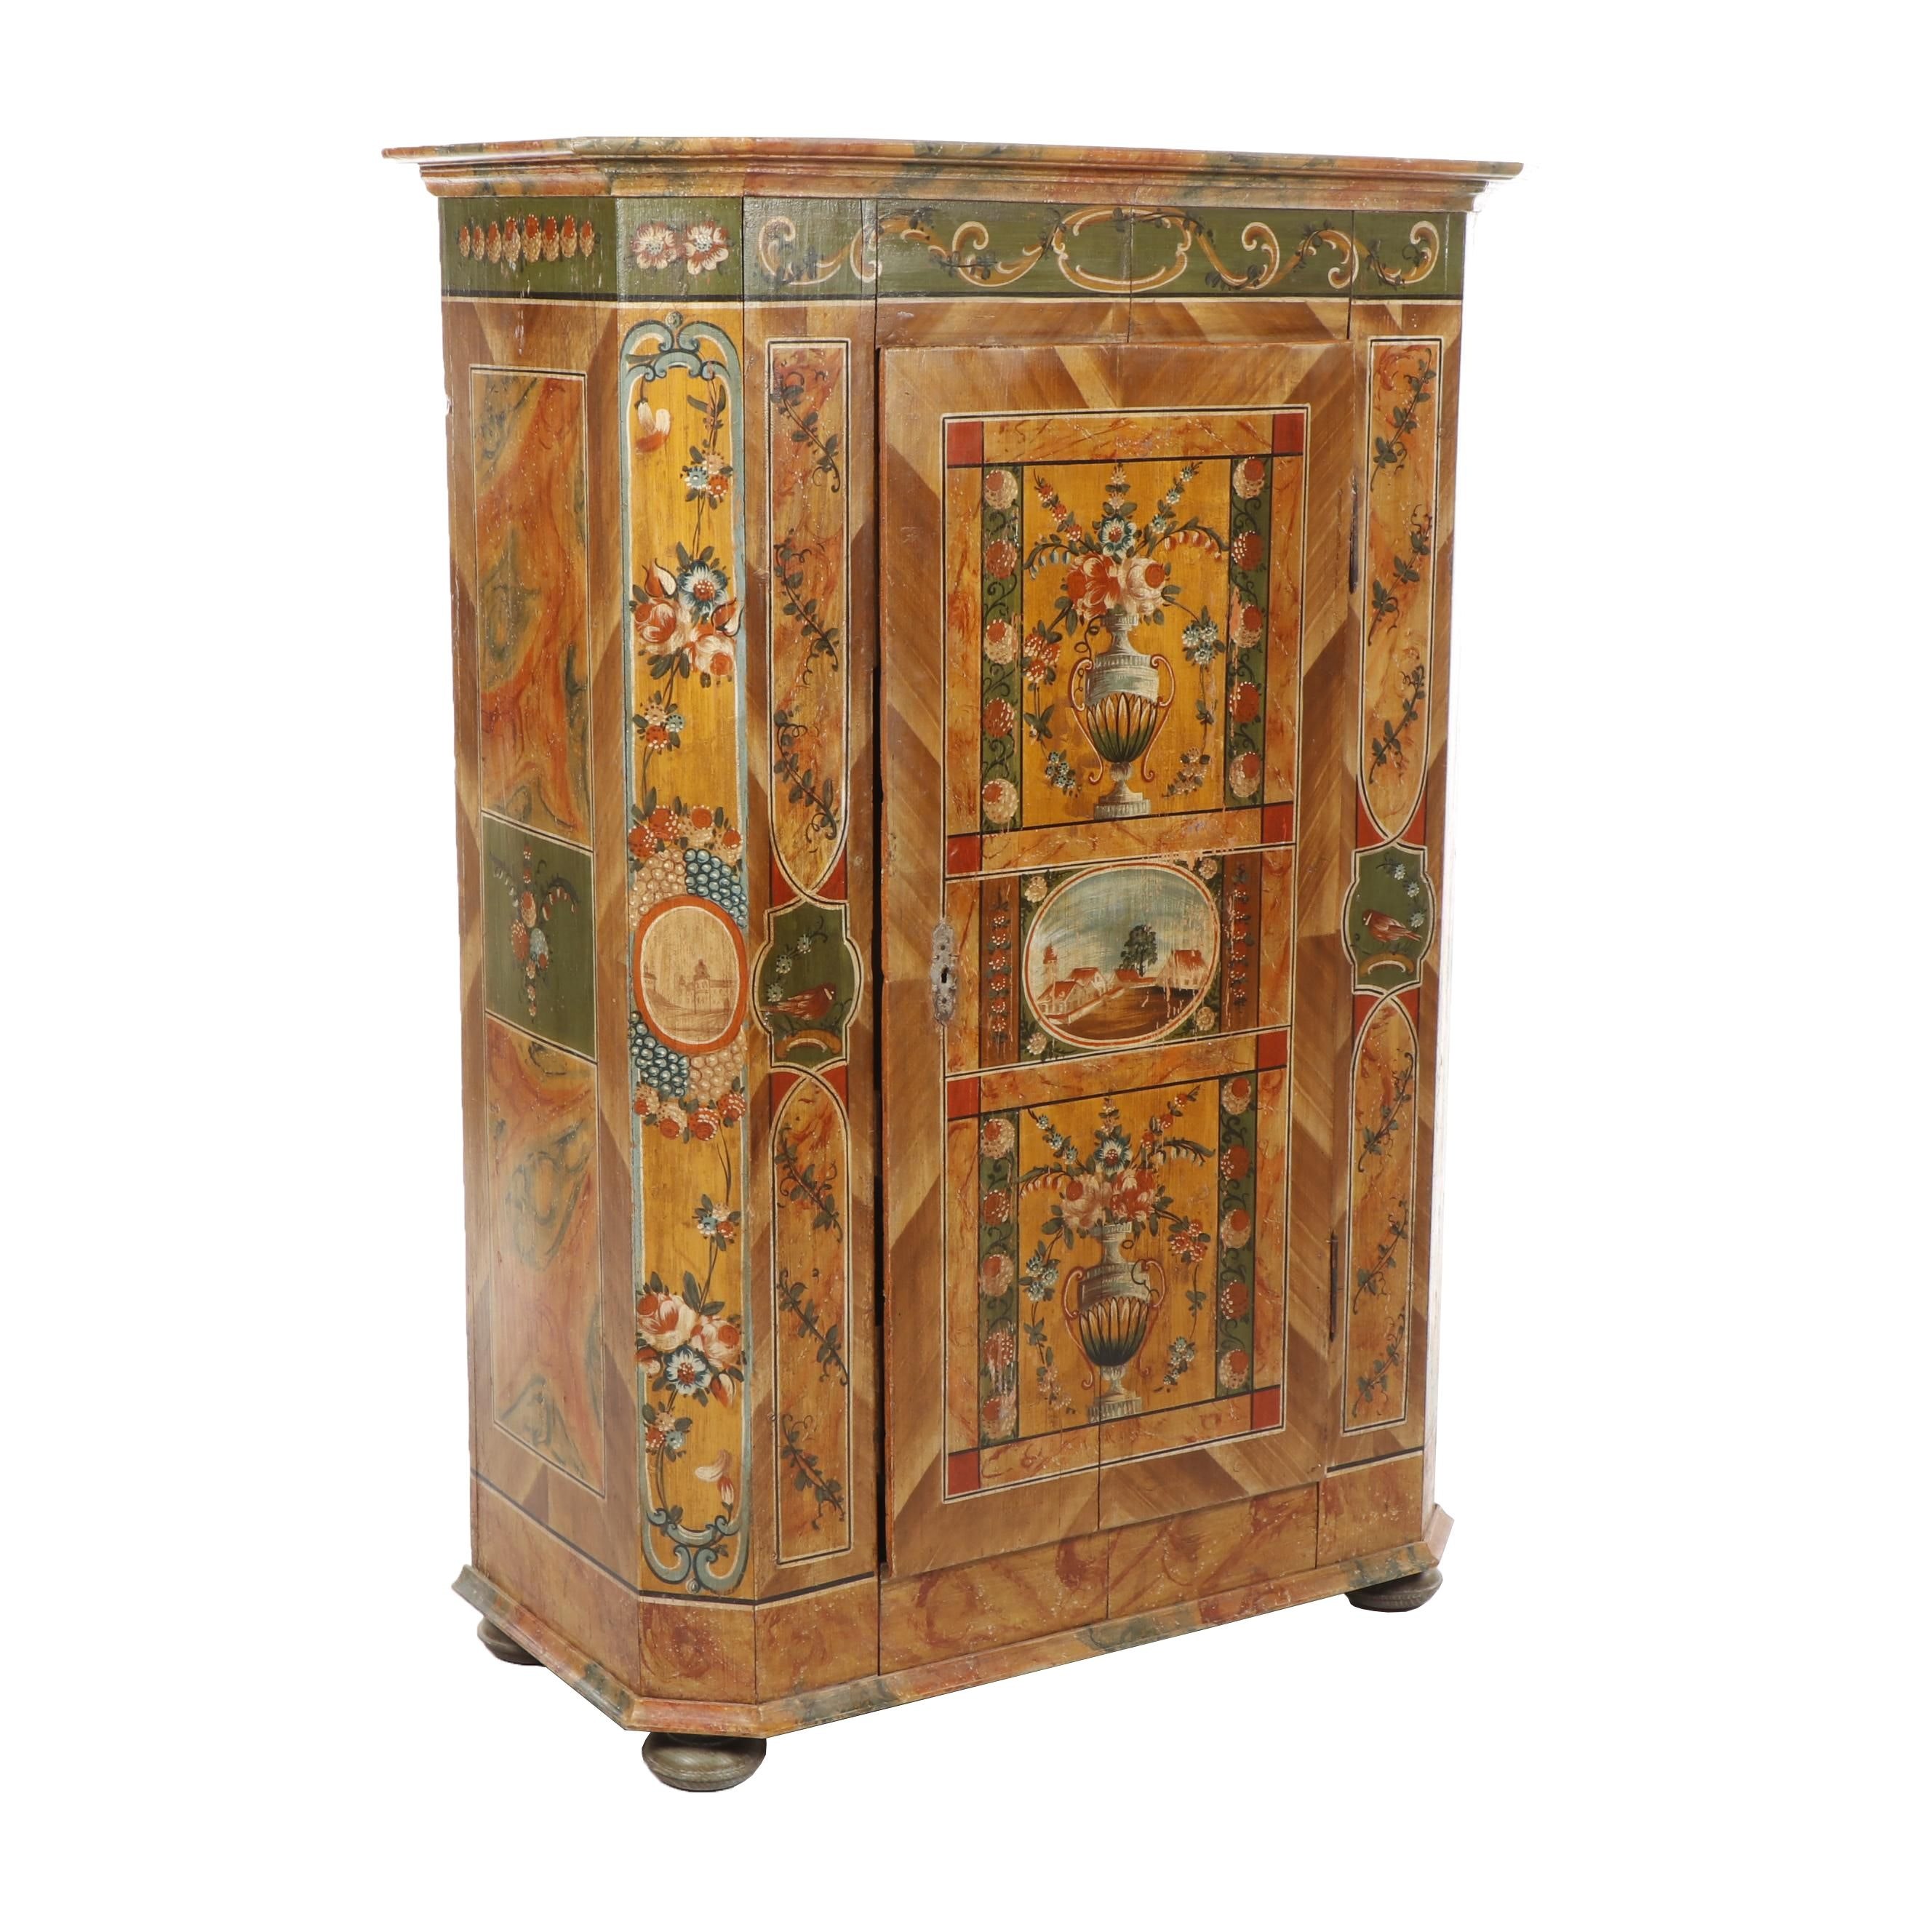 Scandinavian Ornate Hand-Painted Pine Armoire, 1860-1870s